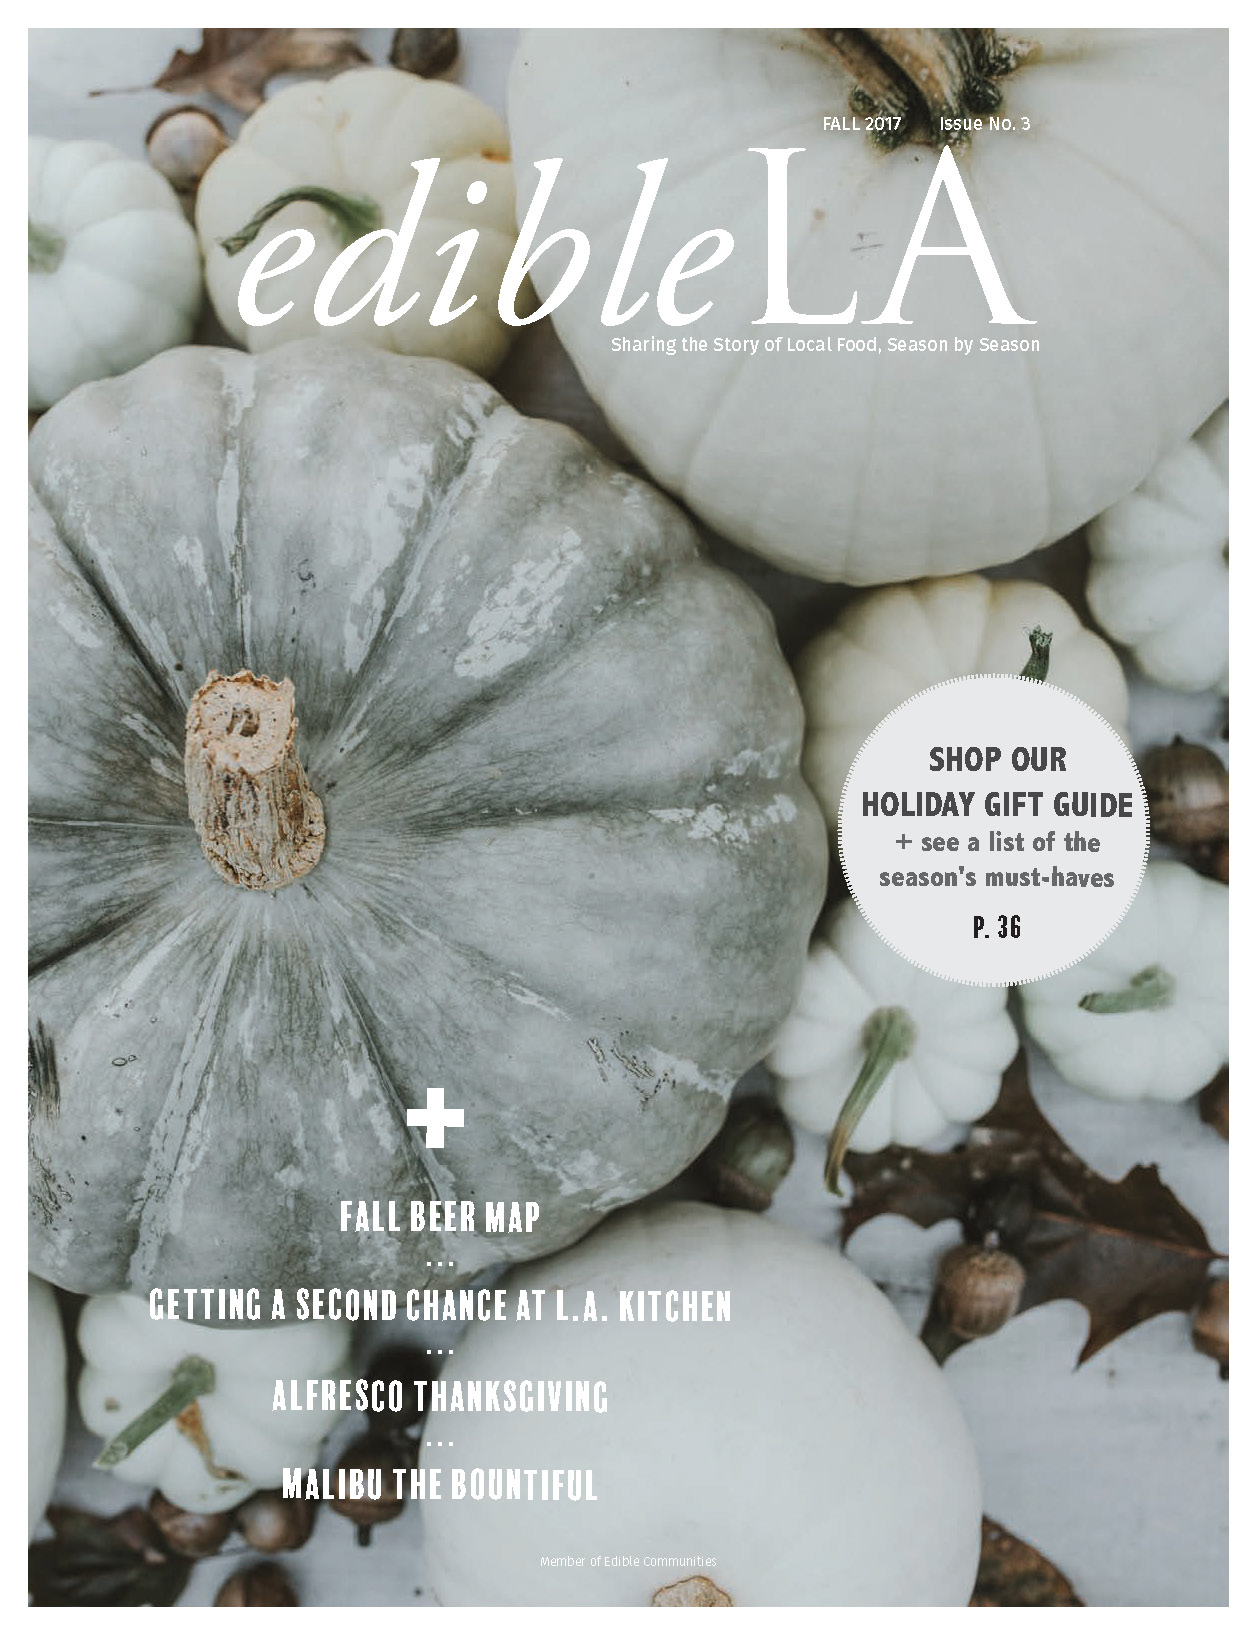 Edible_LA_Fall_2017_Malibu_Page_1.jpg